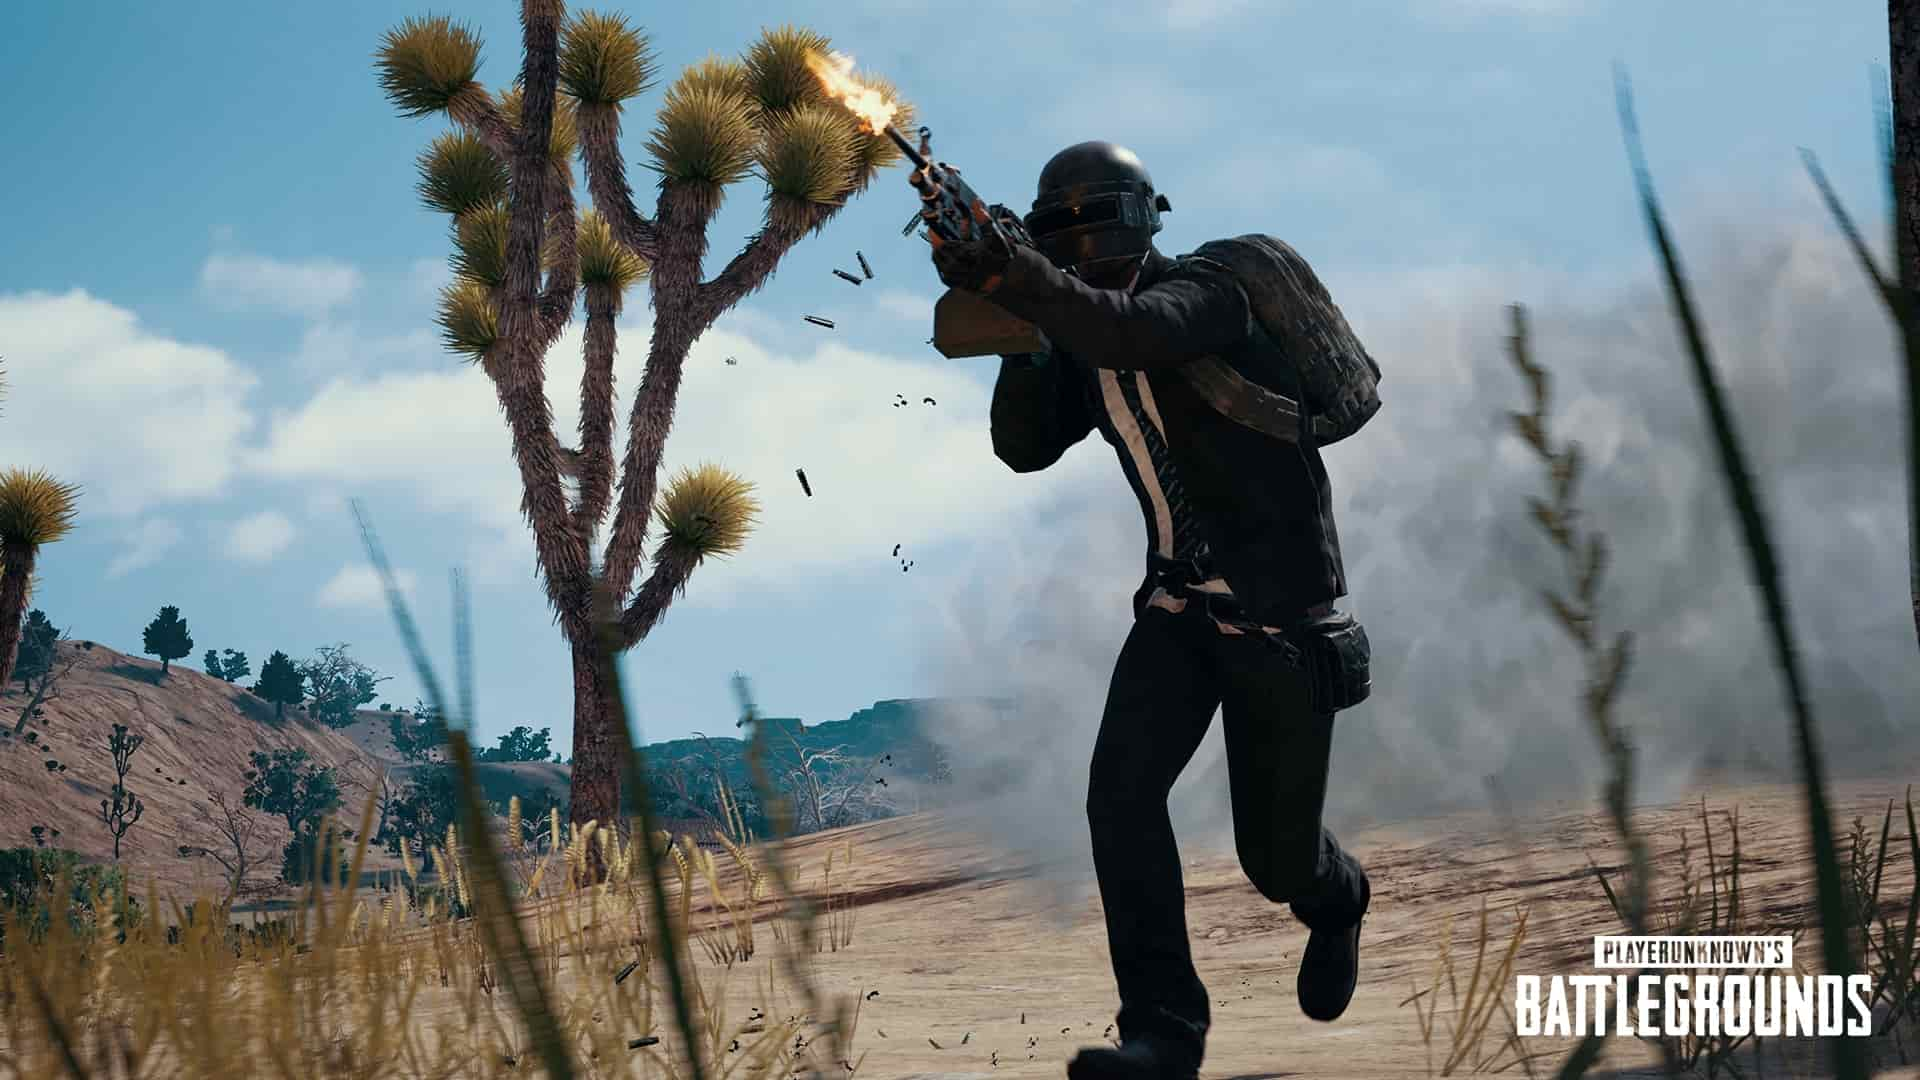 PUBG PC Update 14 Patch Notes: Weapon and Attachment Tweaks, Performance Boost and More